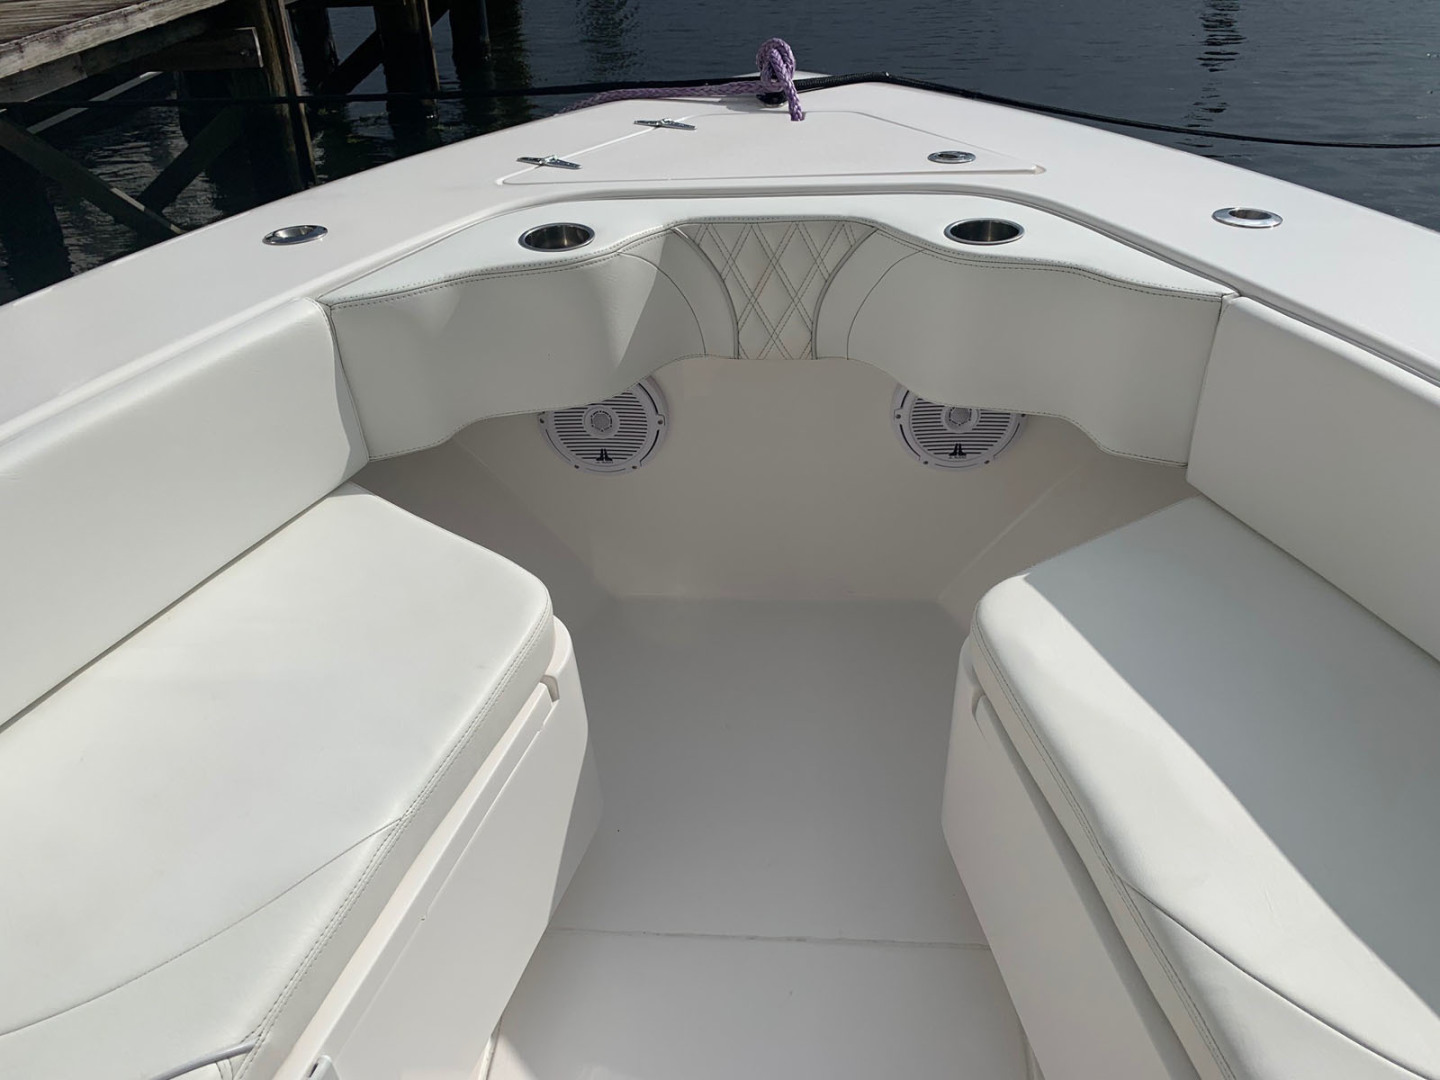 Contender-39 Step Hull w/SeaKeeper 2019-T/T Double Barrel Name Reserved Boca Raton-Florida-United States-Bow Seats-1558942   Thumbnail